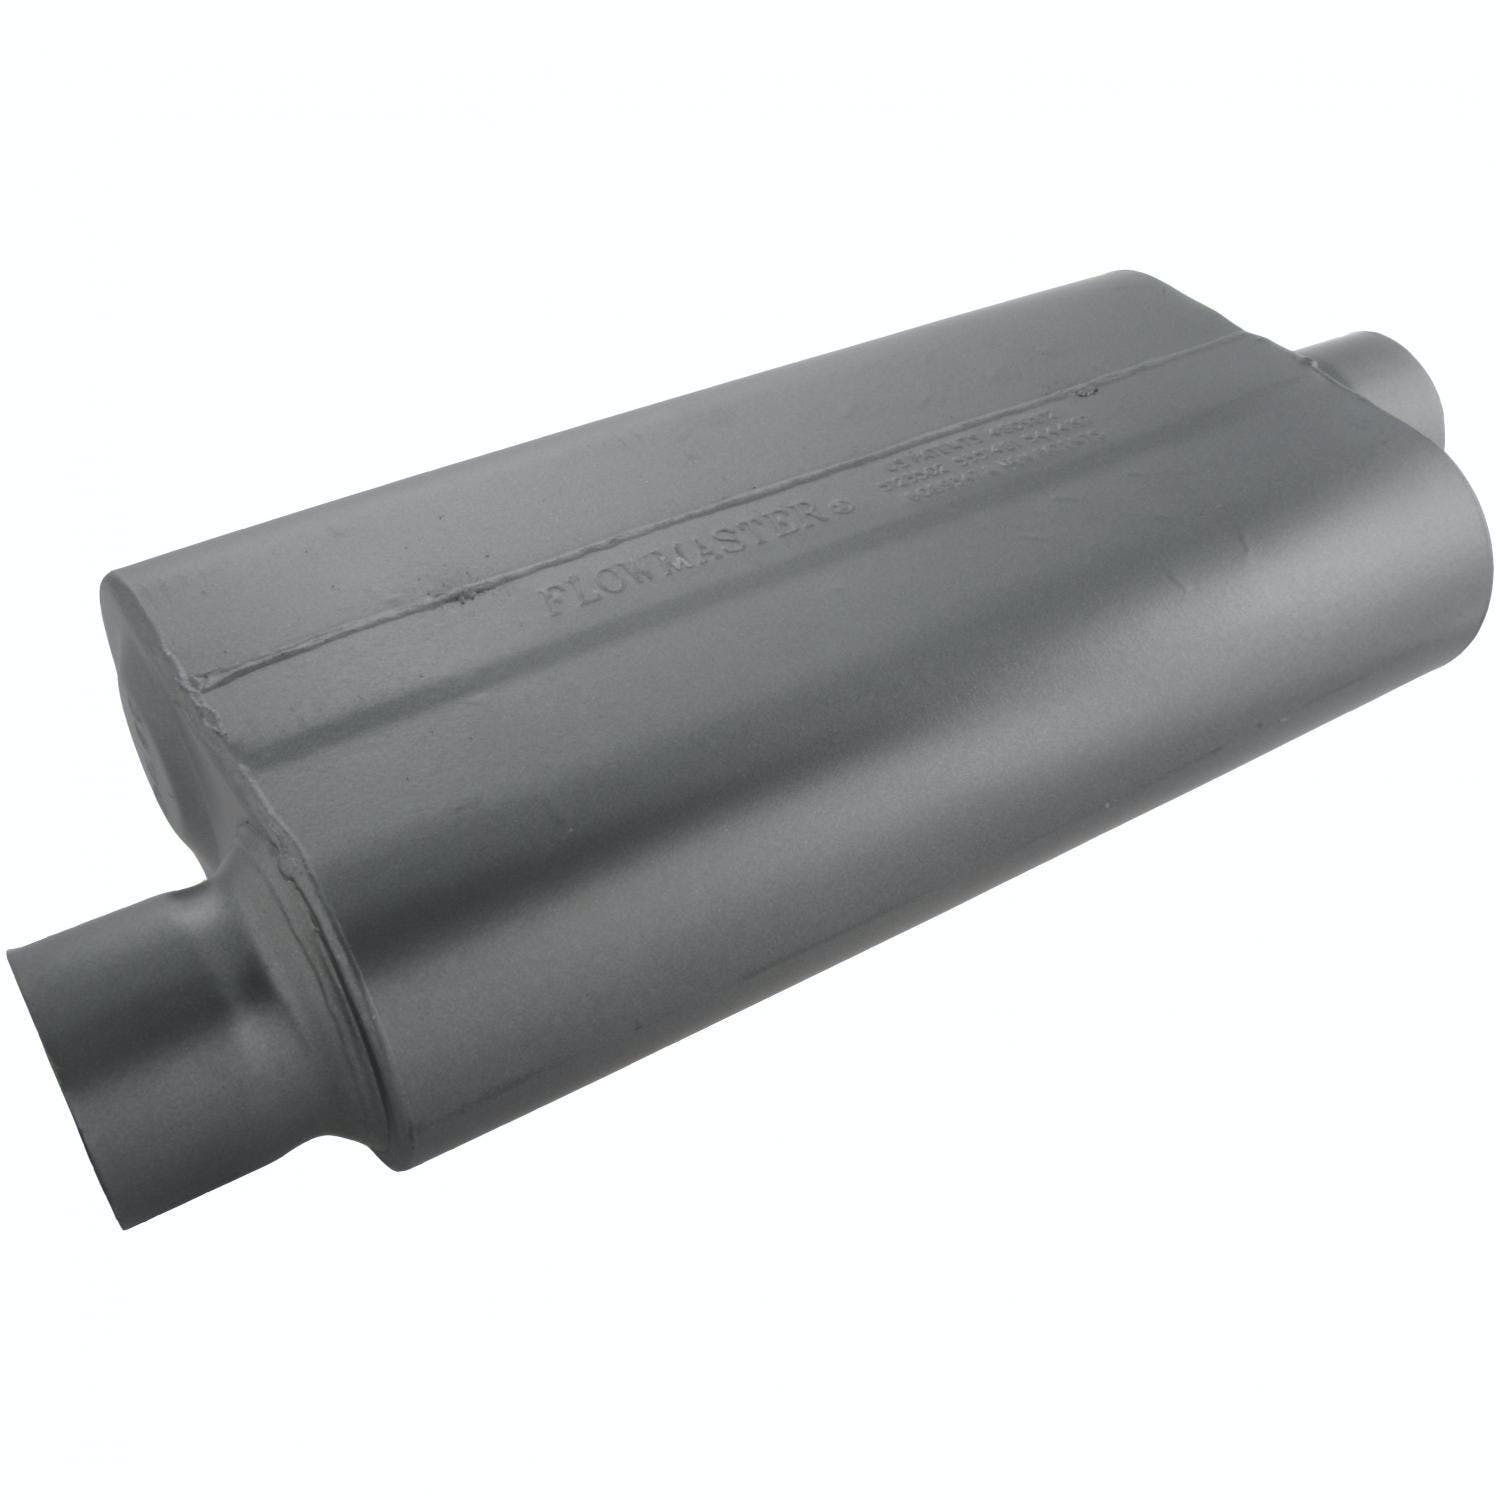 3.00 Center IN Flowmaster 8430502 50 Delta Muffler 409S Moderate Sound 2.50 Dual OUT